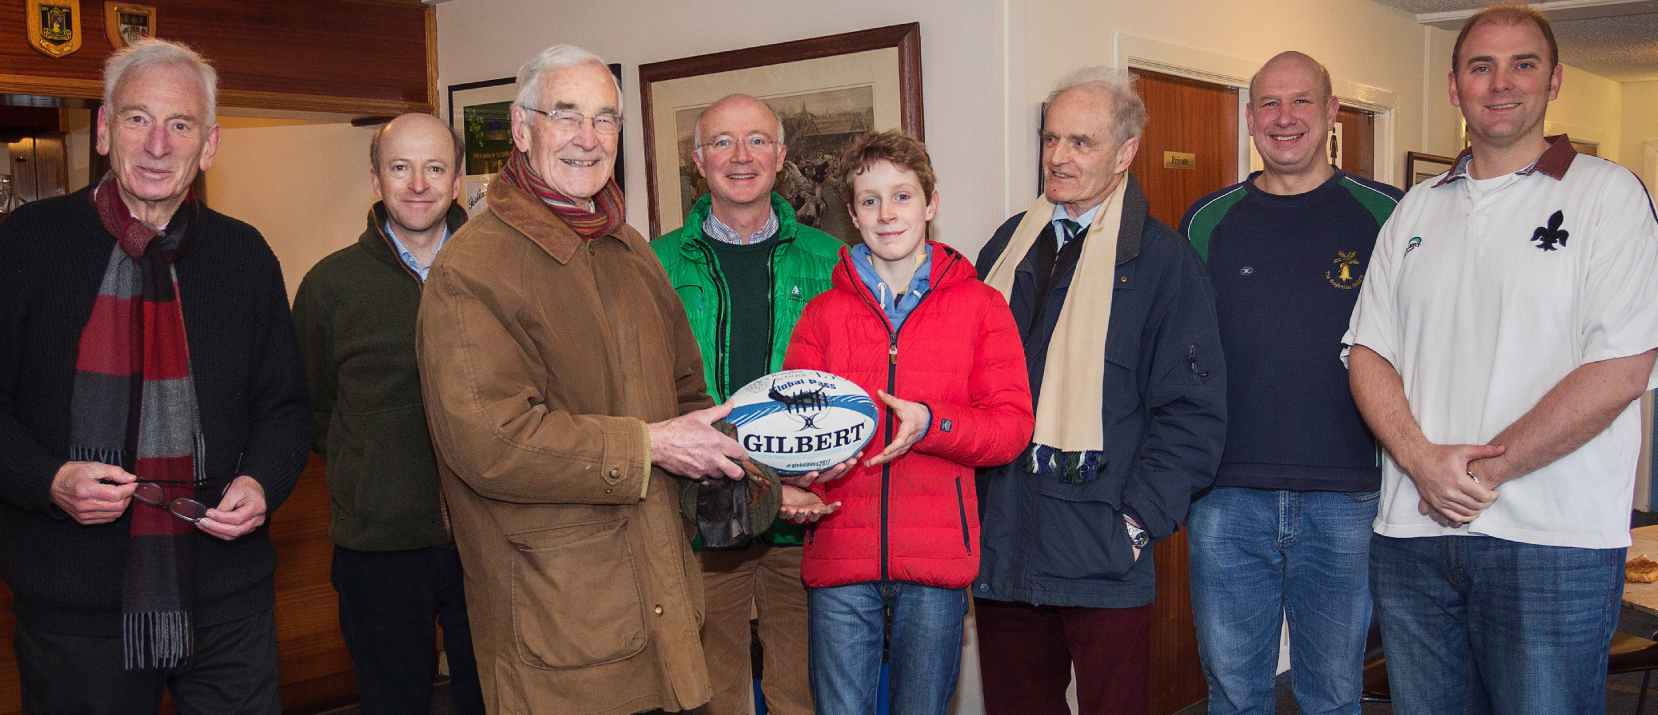 Rugbeians at Raeburn Place for Rugby School's 450th anniversary